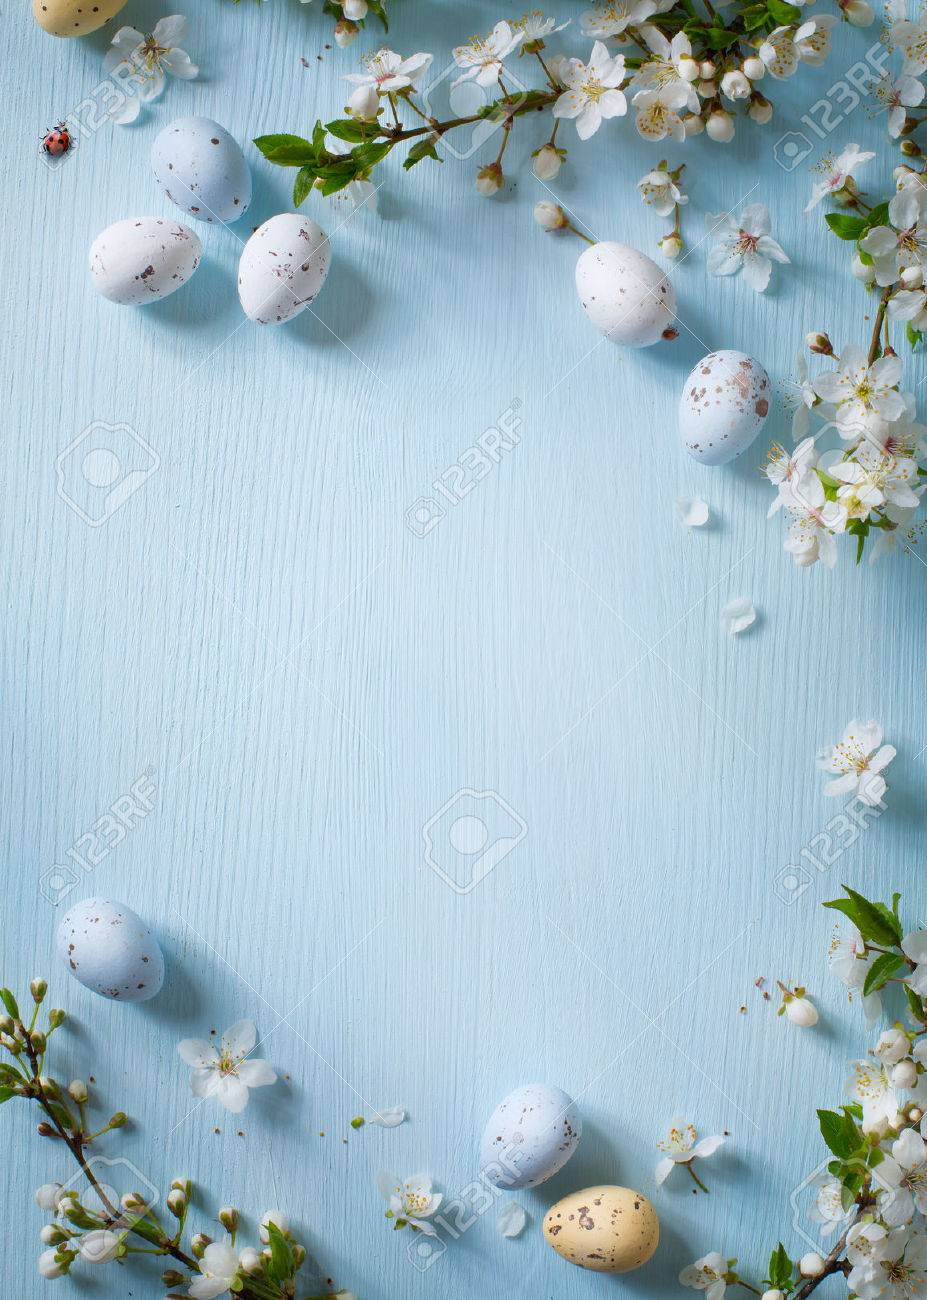 Easter eggs and spring flowers on wooden background Stock Photo - 52674410